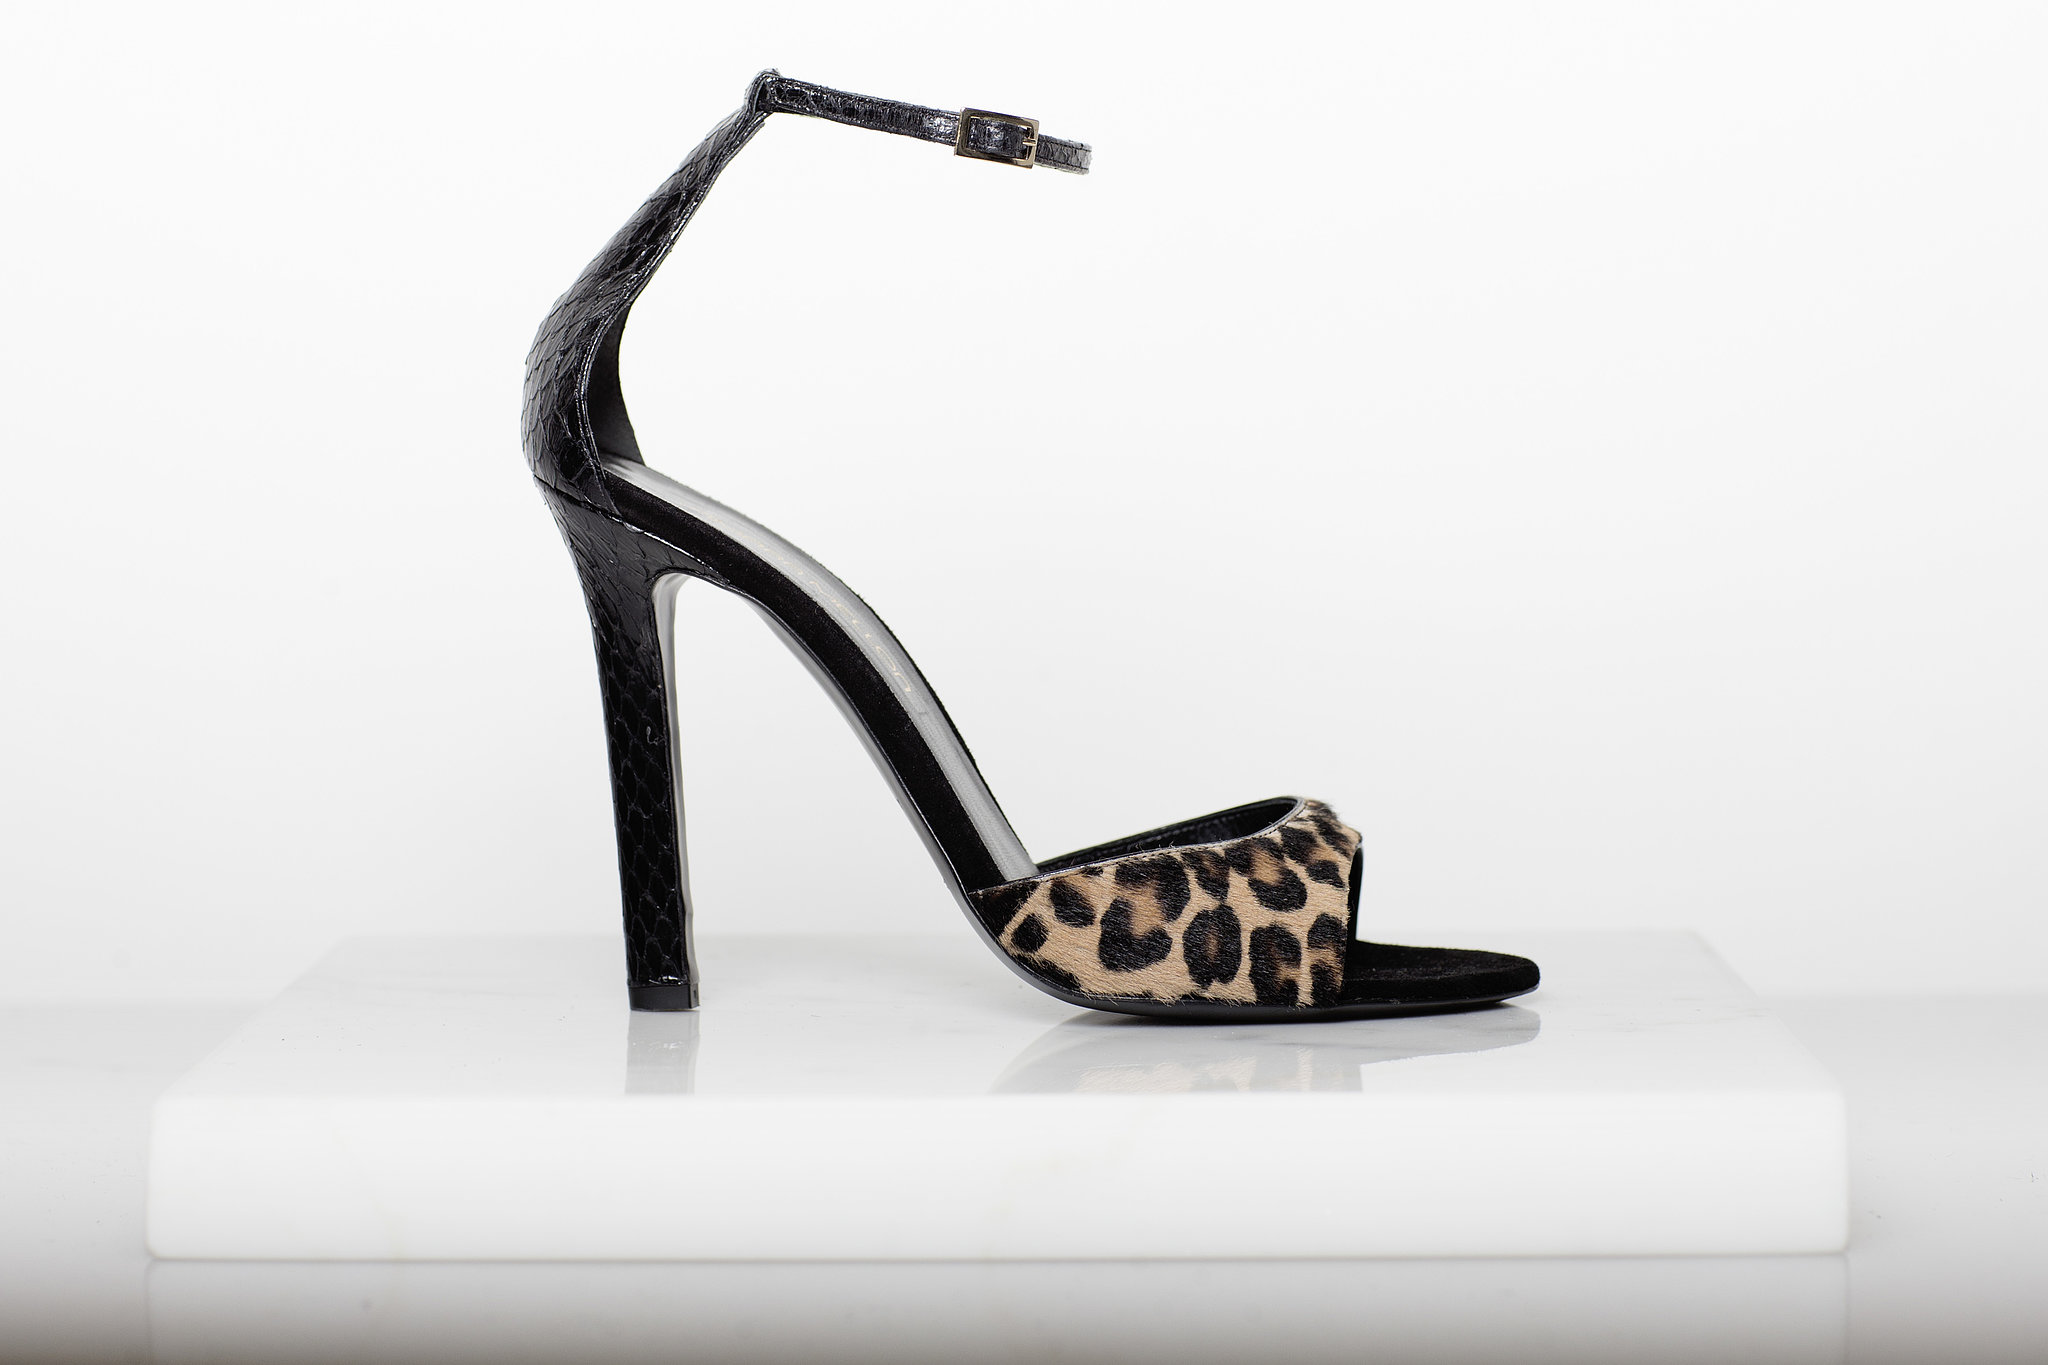 Wild Night Pony Sandal in Leopard With Black Snake Trim ($750) Photo courtesy of Tamara Mellon